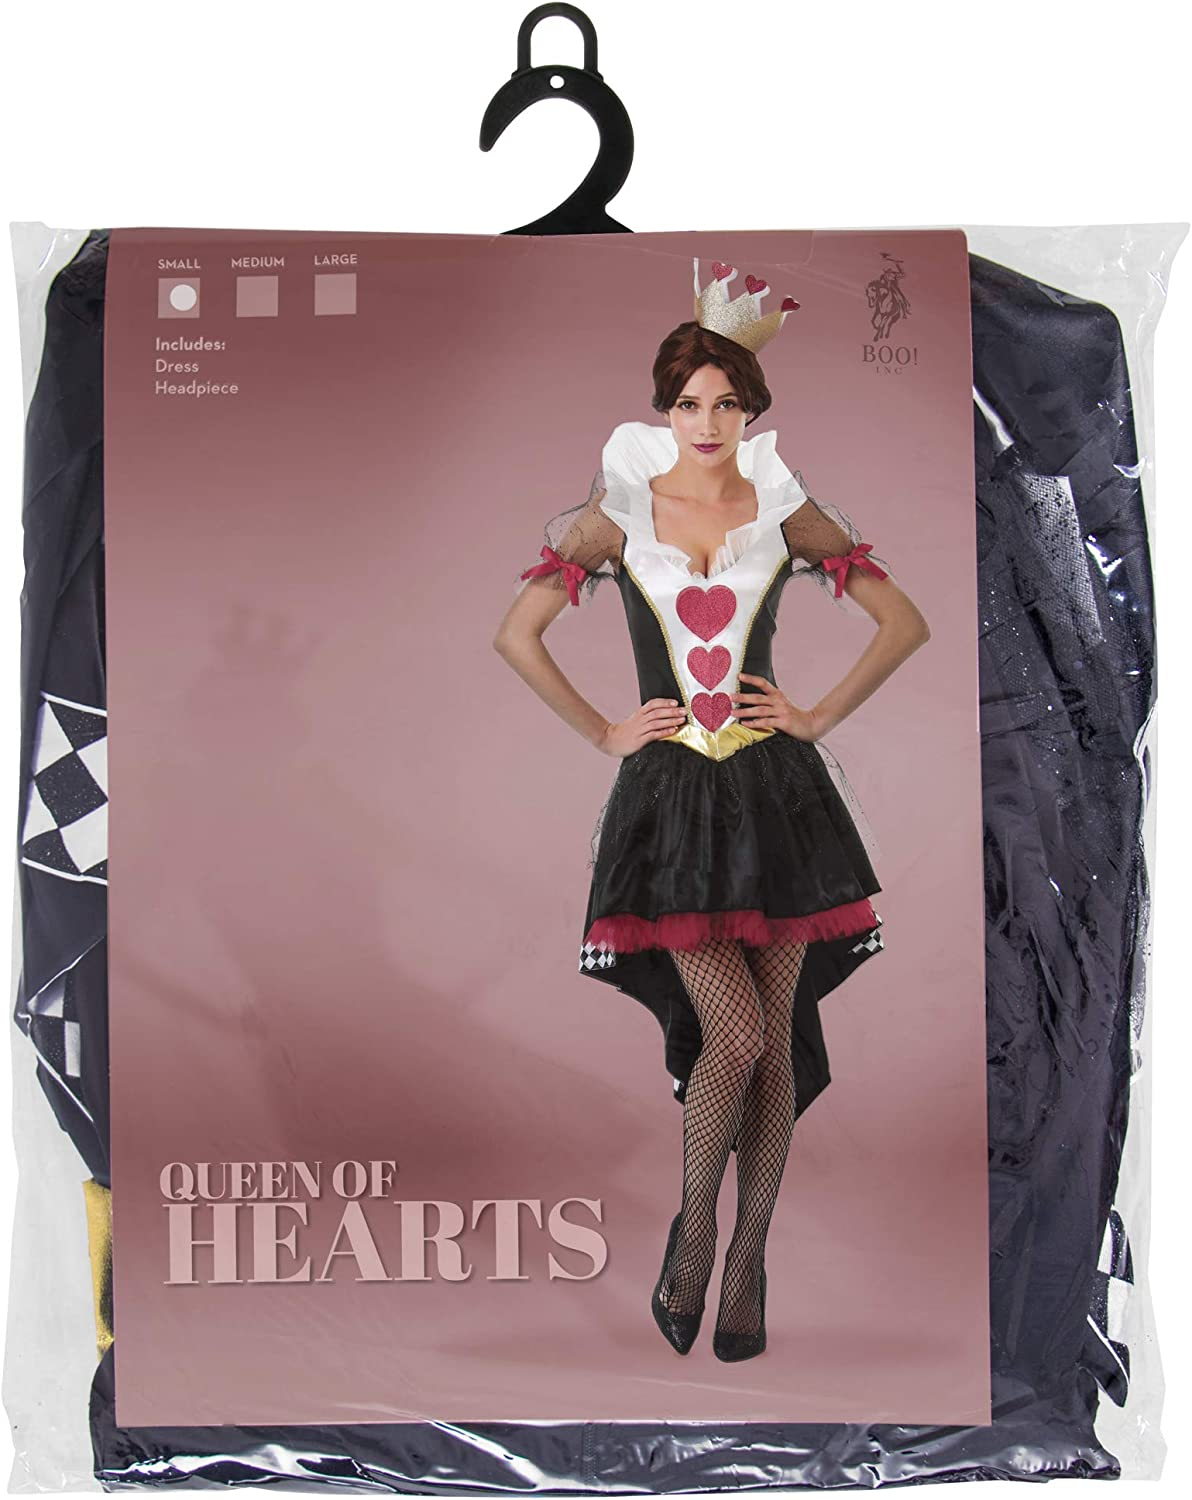 Queen of Hearts Royal Card Suit Tights Playing Cards Alice In Wonderland